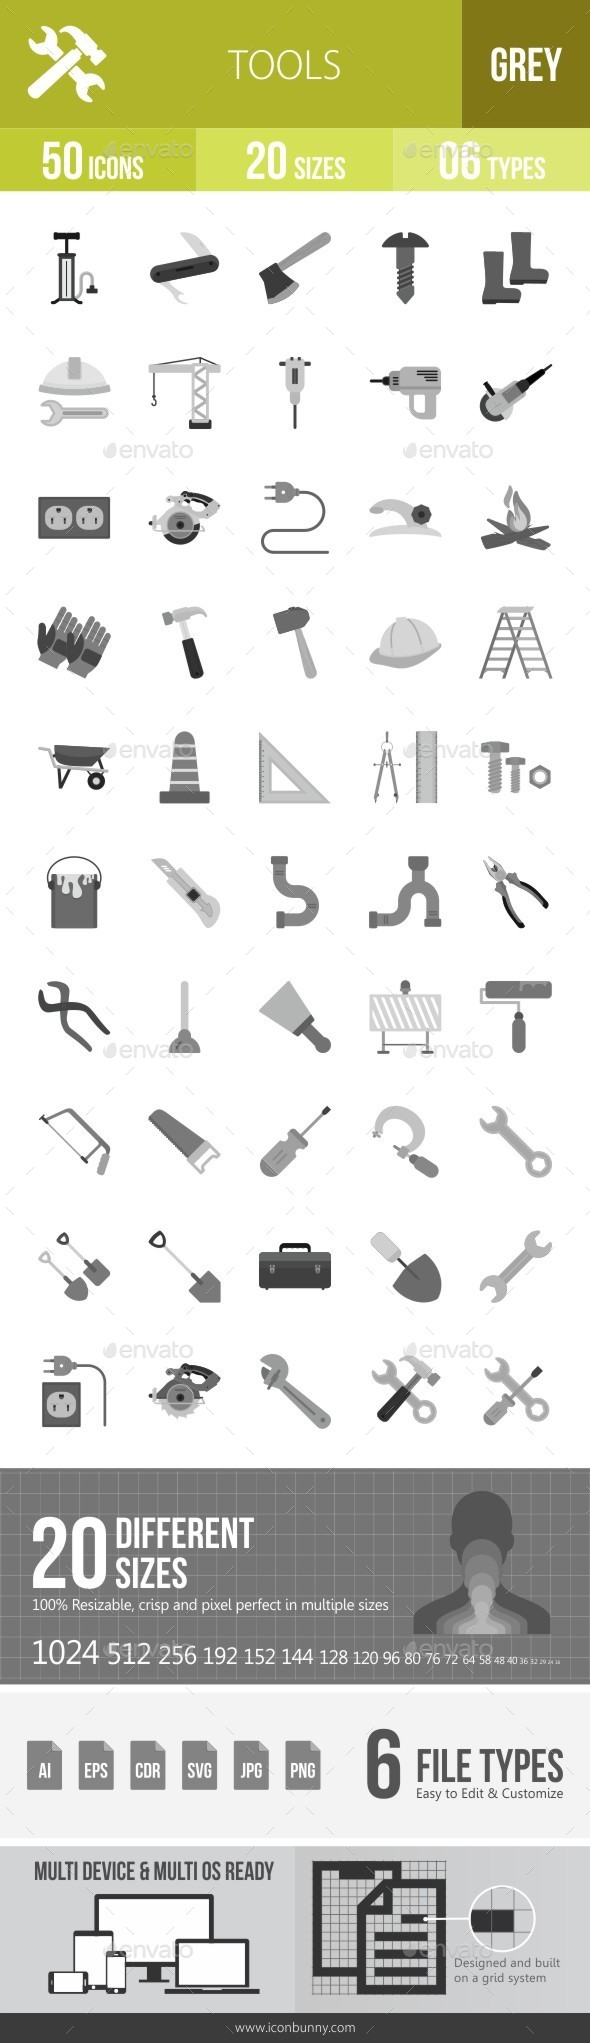 Tools Greyscale Icons - Icons